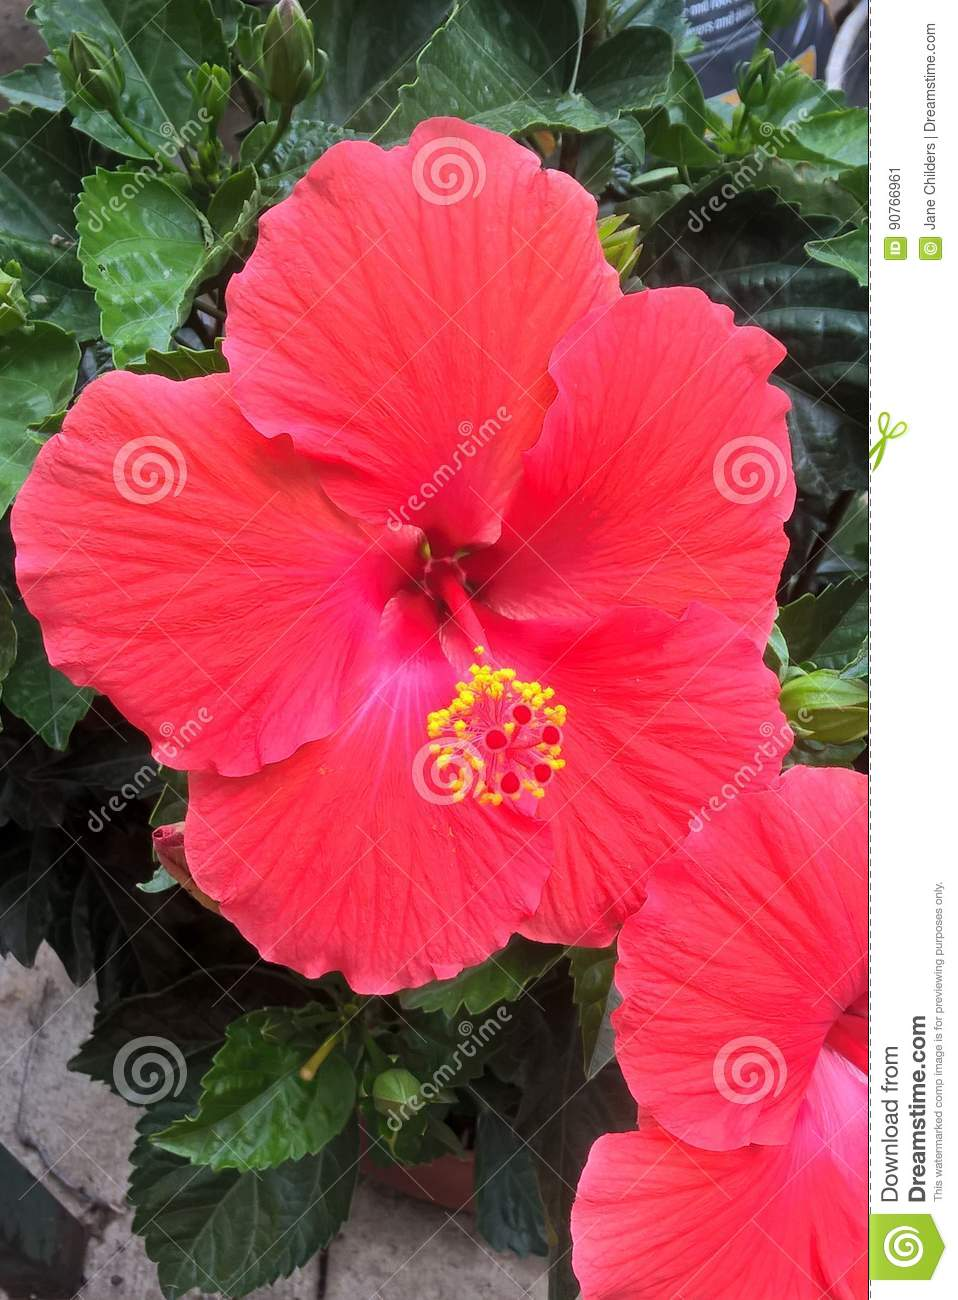 Hibiscus Flower Stock Image Image Of Growing Horticulture 90766961